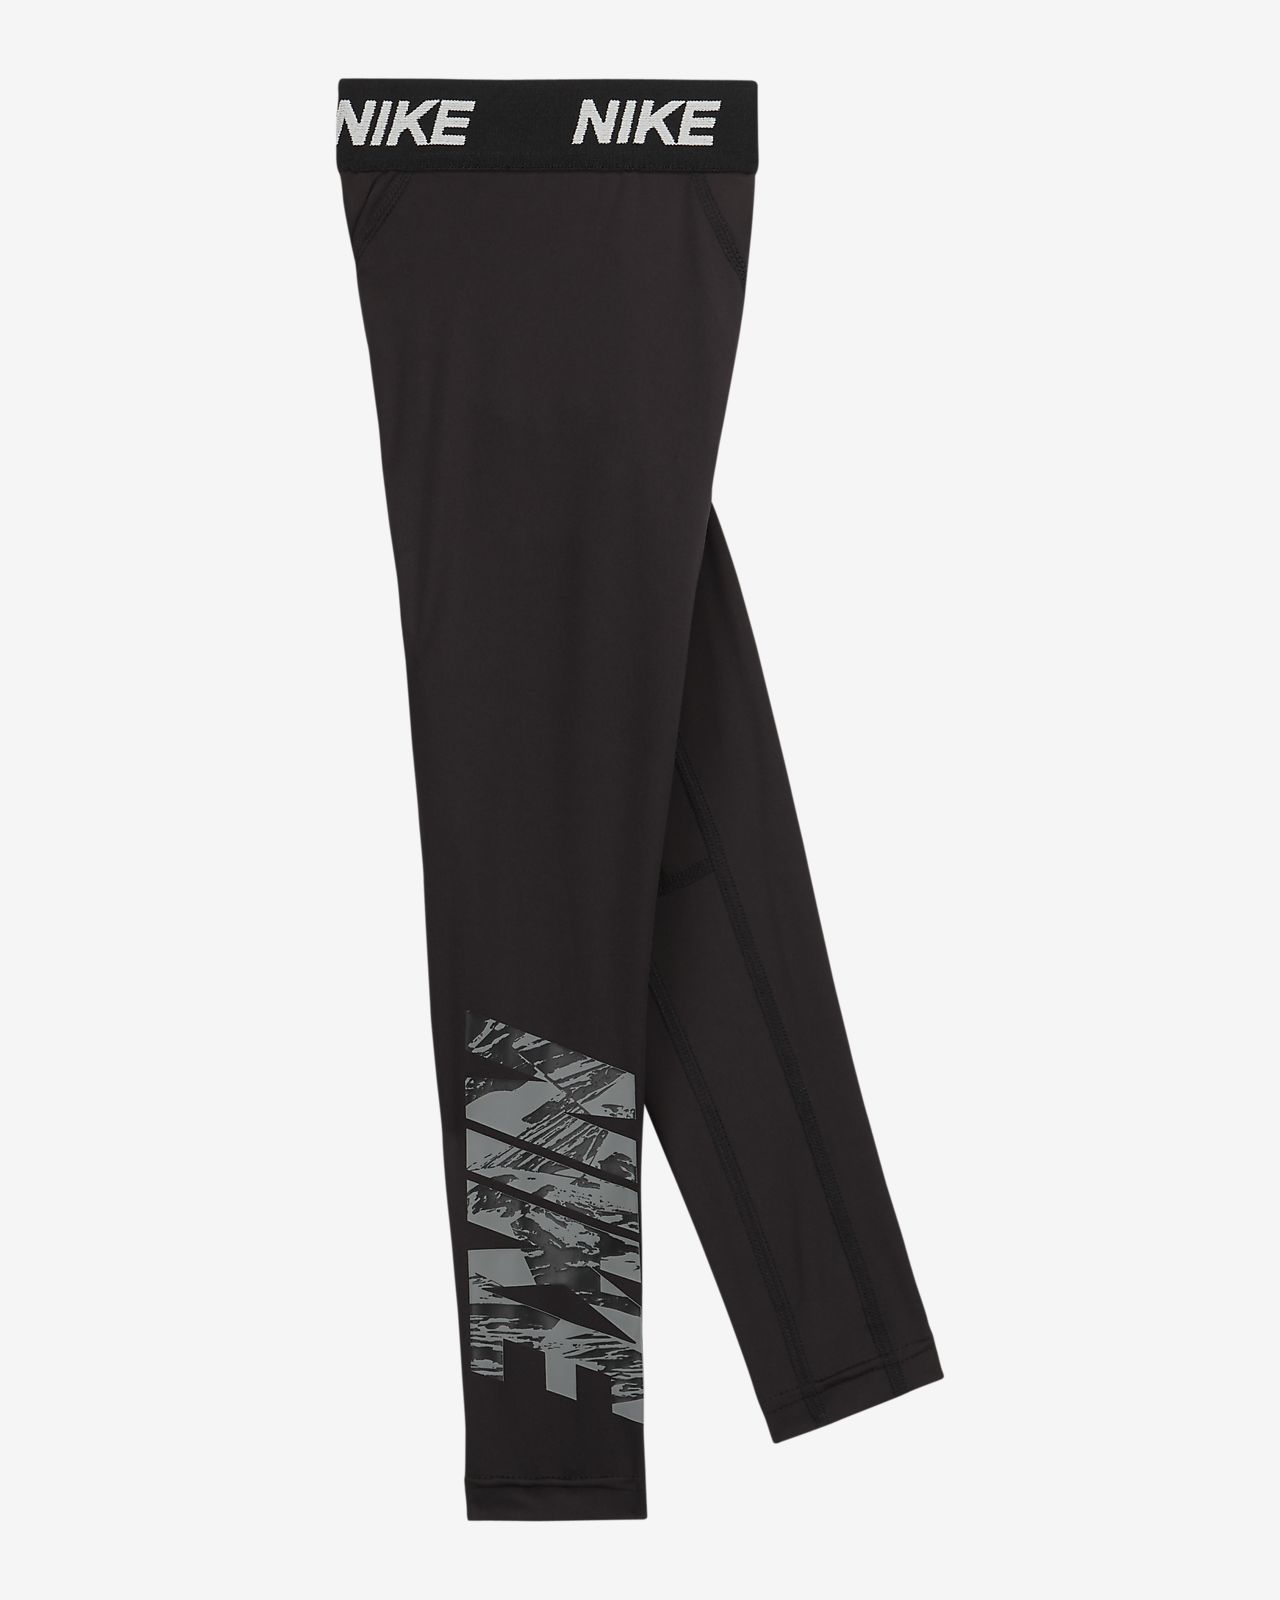 Nike Dri-FIT Little Kids' Tights